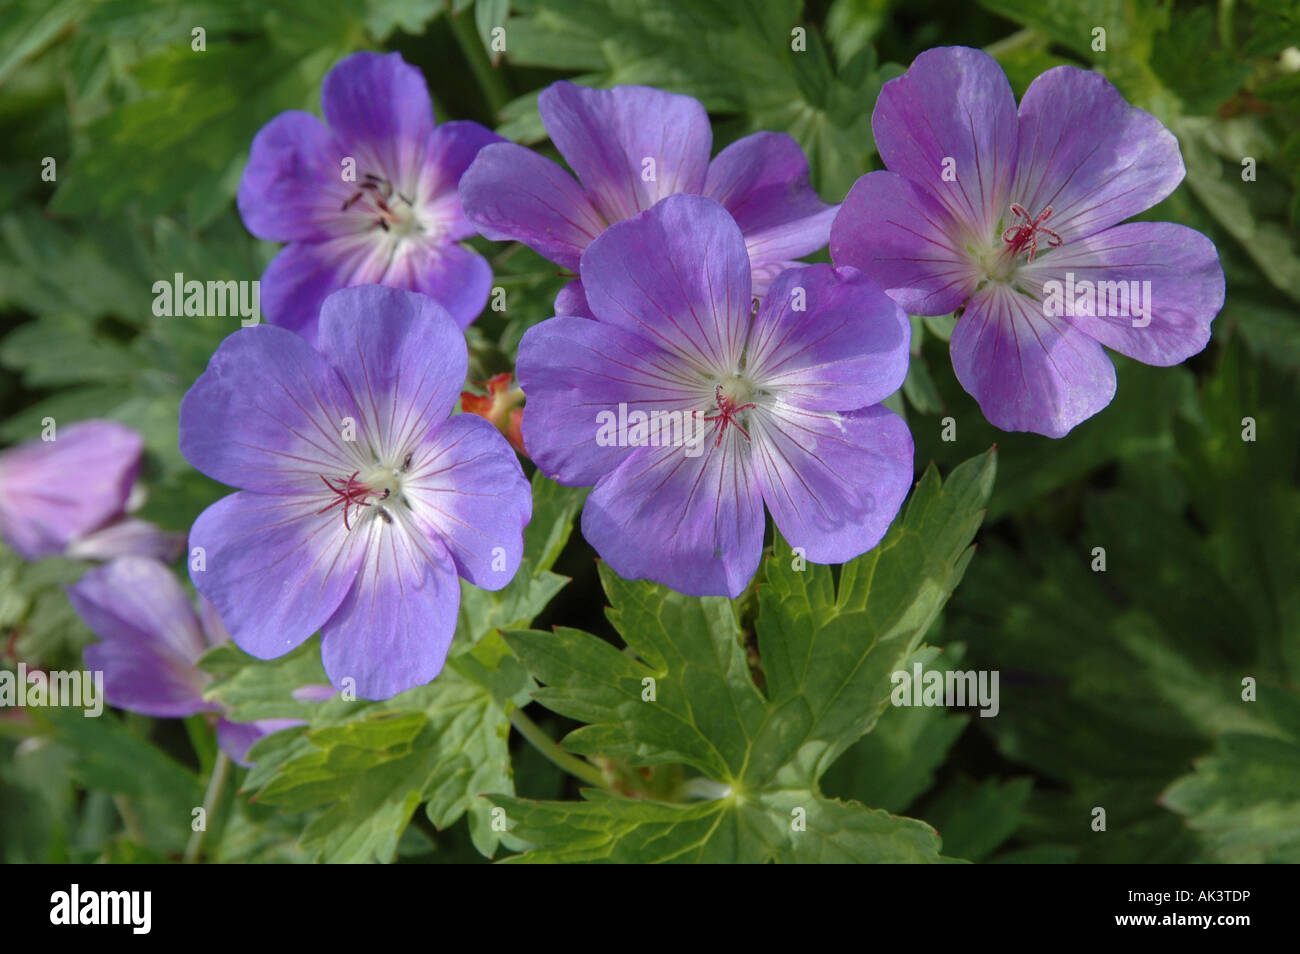 Hardy perennial geranium rozanne gerwat with light blue flowers a hardy perennial geranium rozanne gerwat with light blue flowers a great ground cover plant image taken june 2007 izmirmasajfo